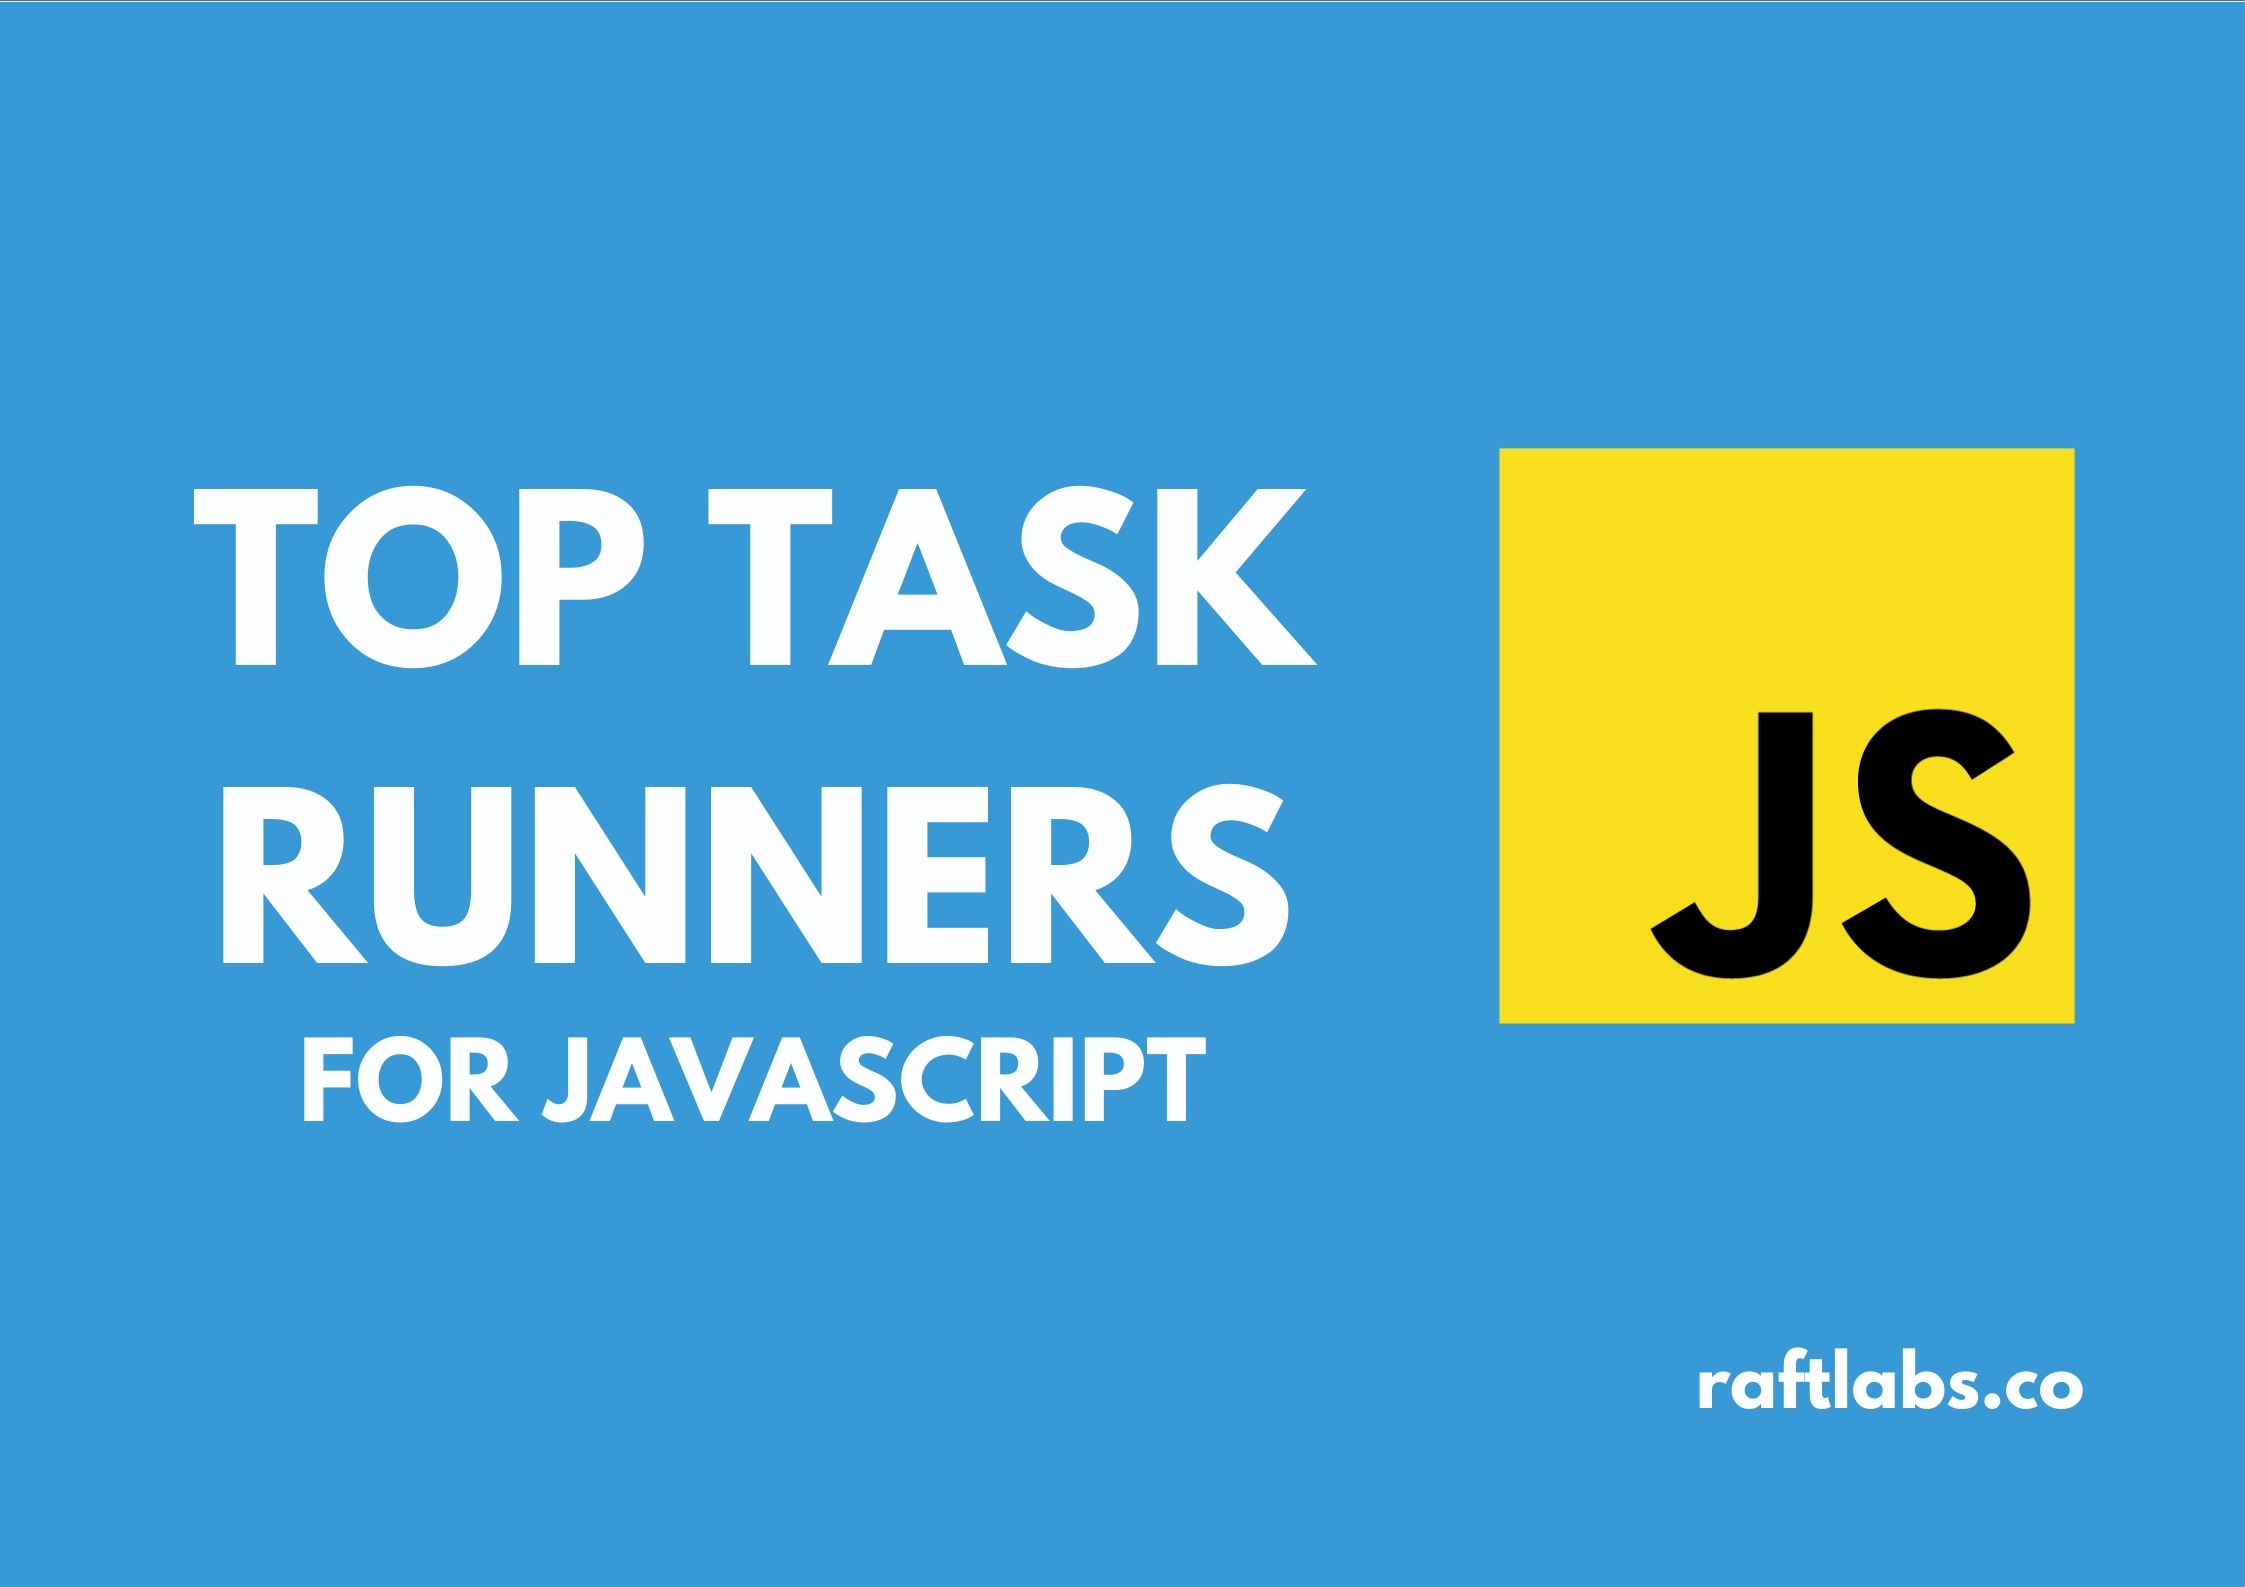 Top Task Runners for JavaScript with new JavaScript logo - raftlabs.co